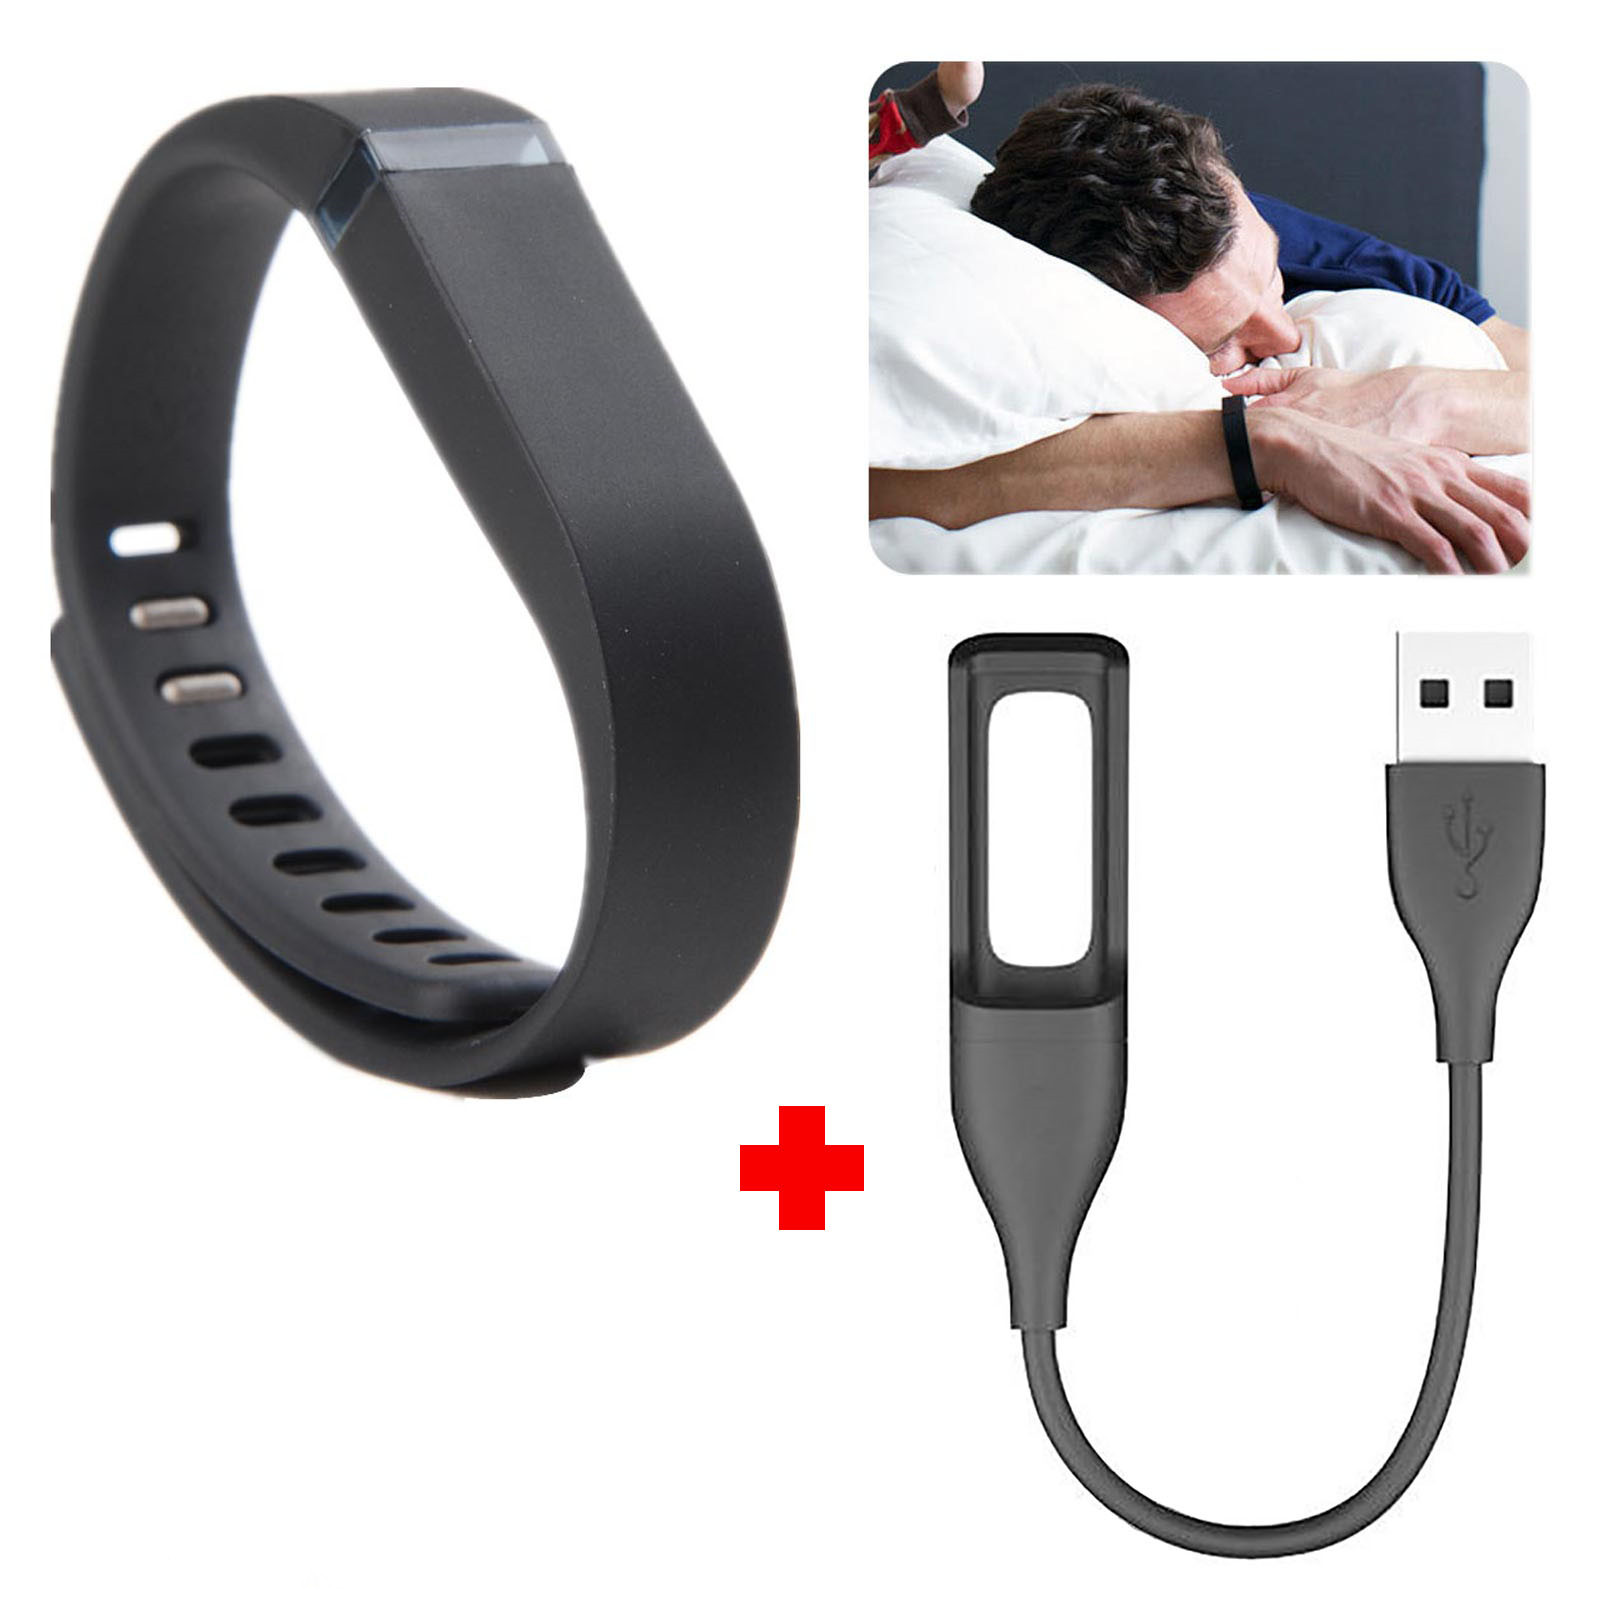 EEEKit 2in1 Kit for Fitbit Flex Wireless Wristband, Replacement Wrist Band, Usb Charging Cable Cord